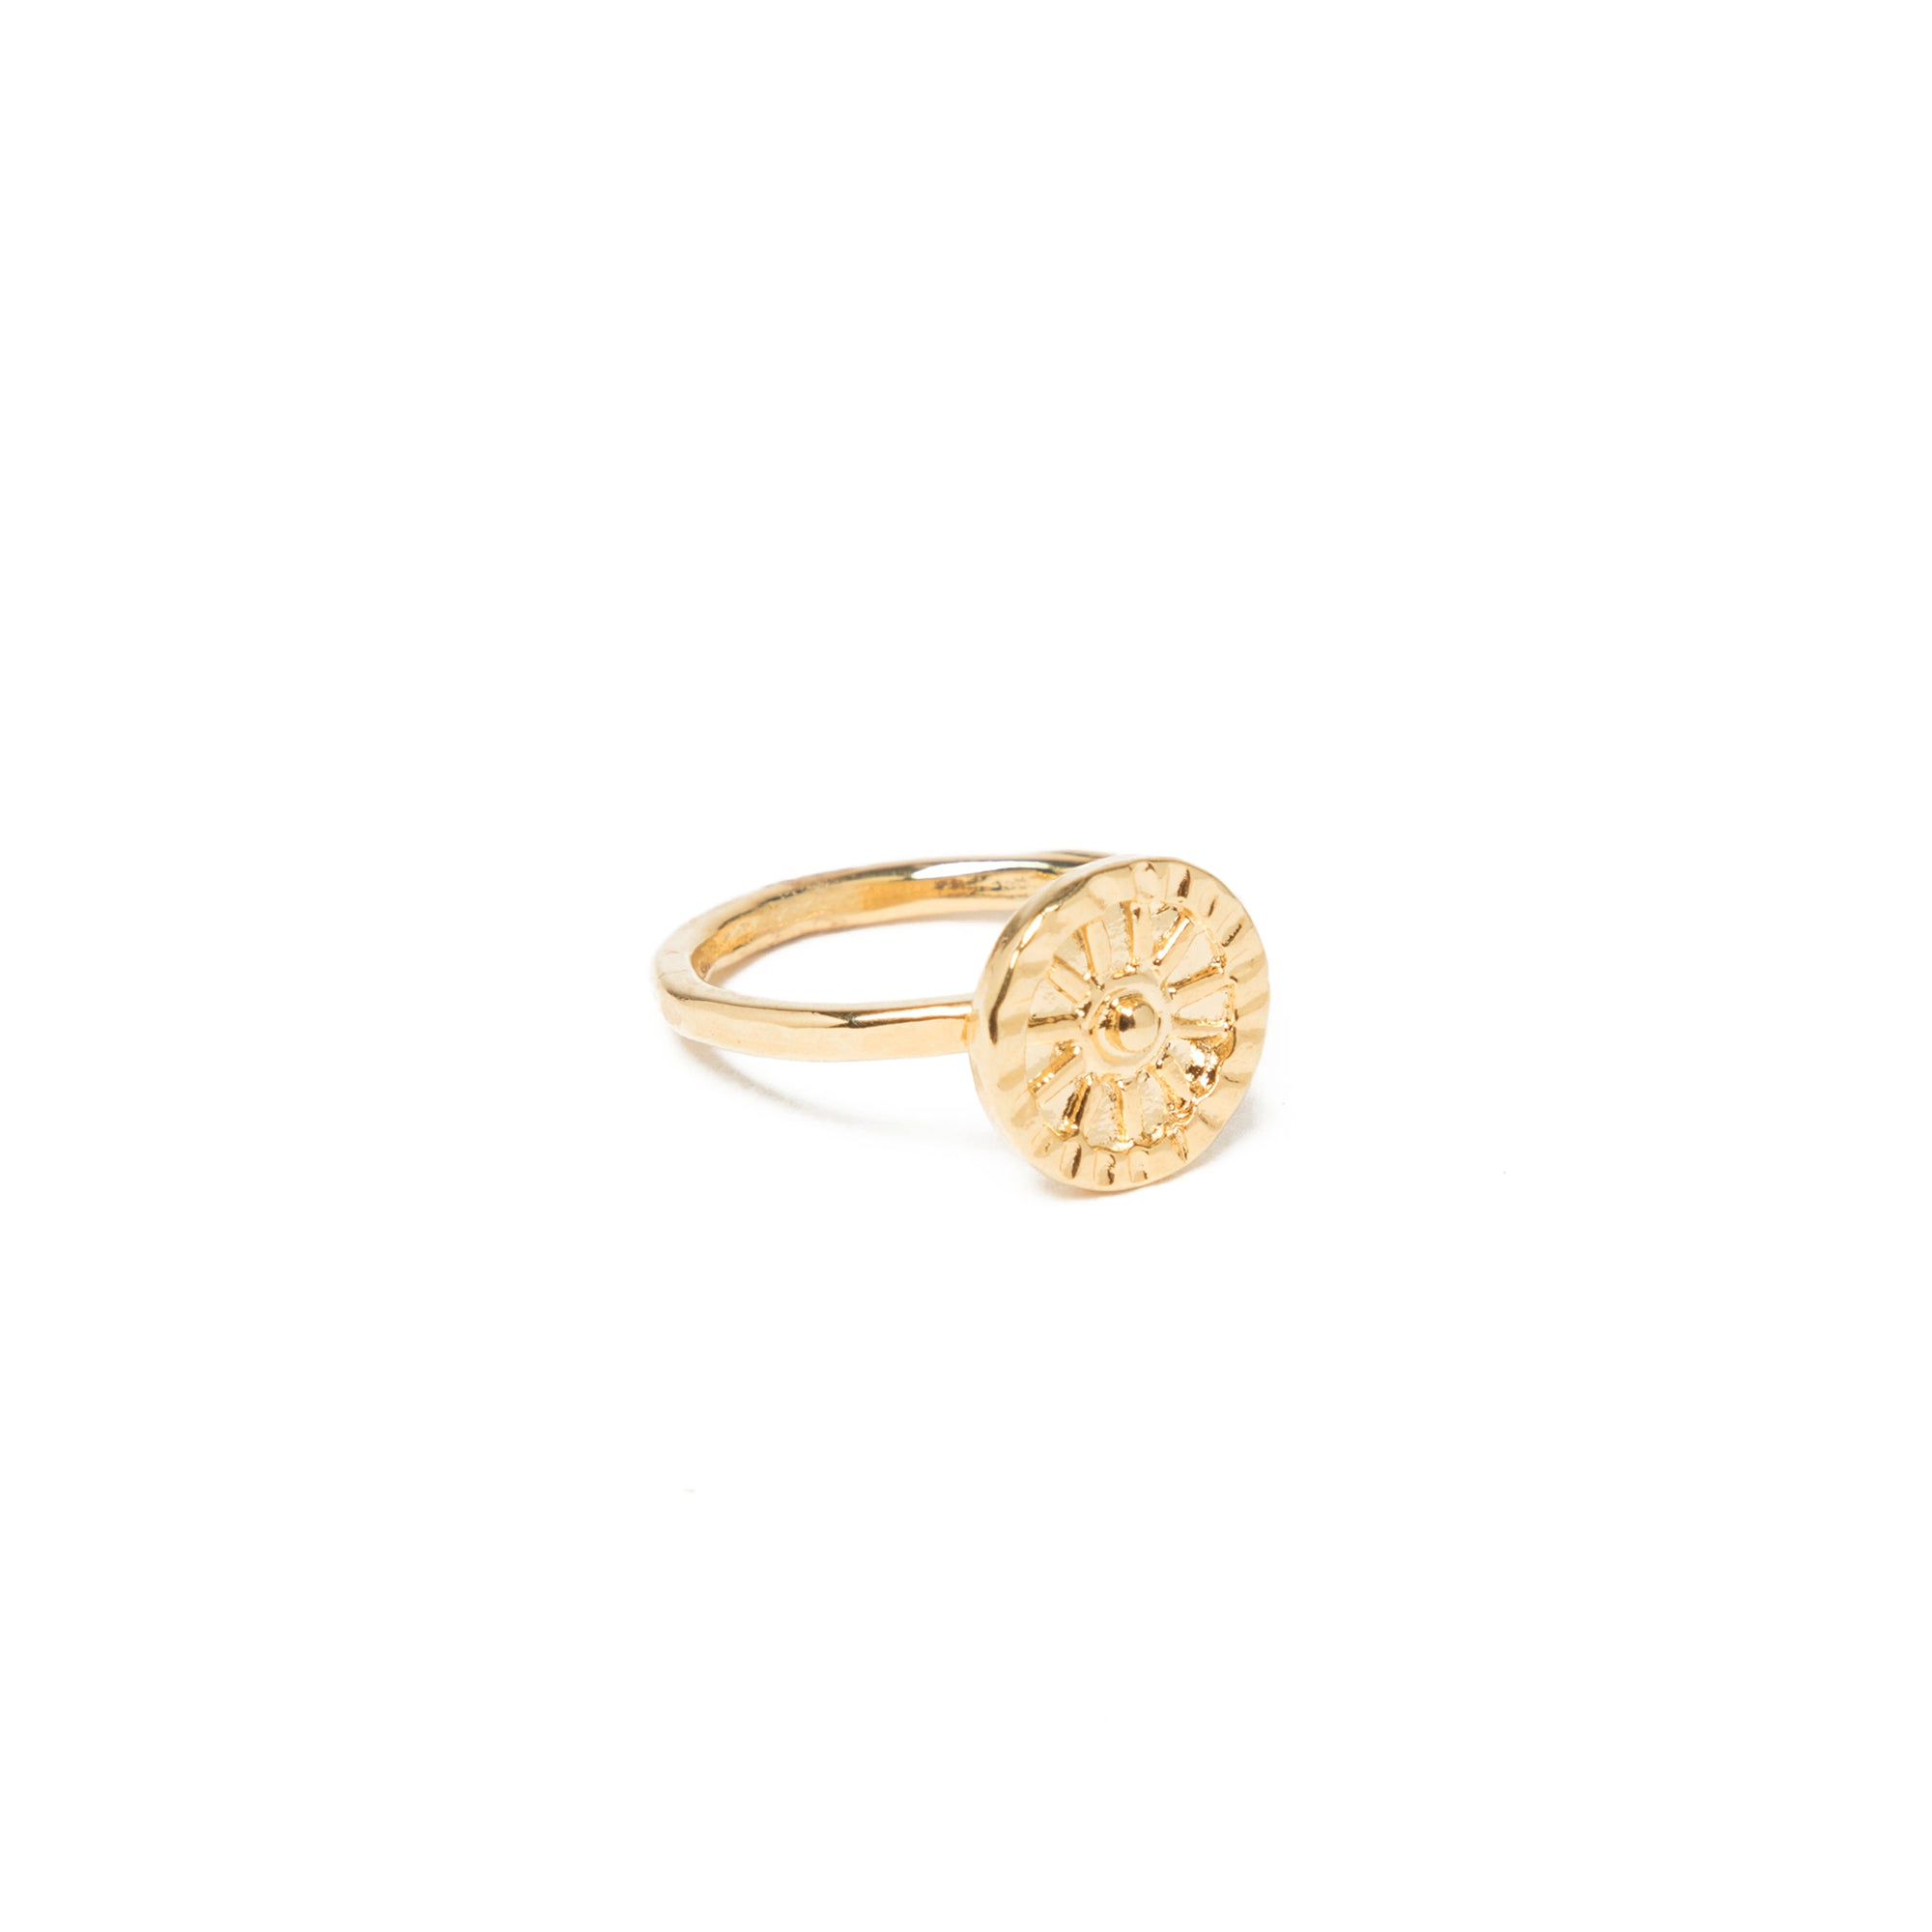 Etruscan Rosette Ring, Side view | Getty Store